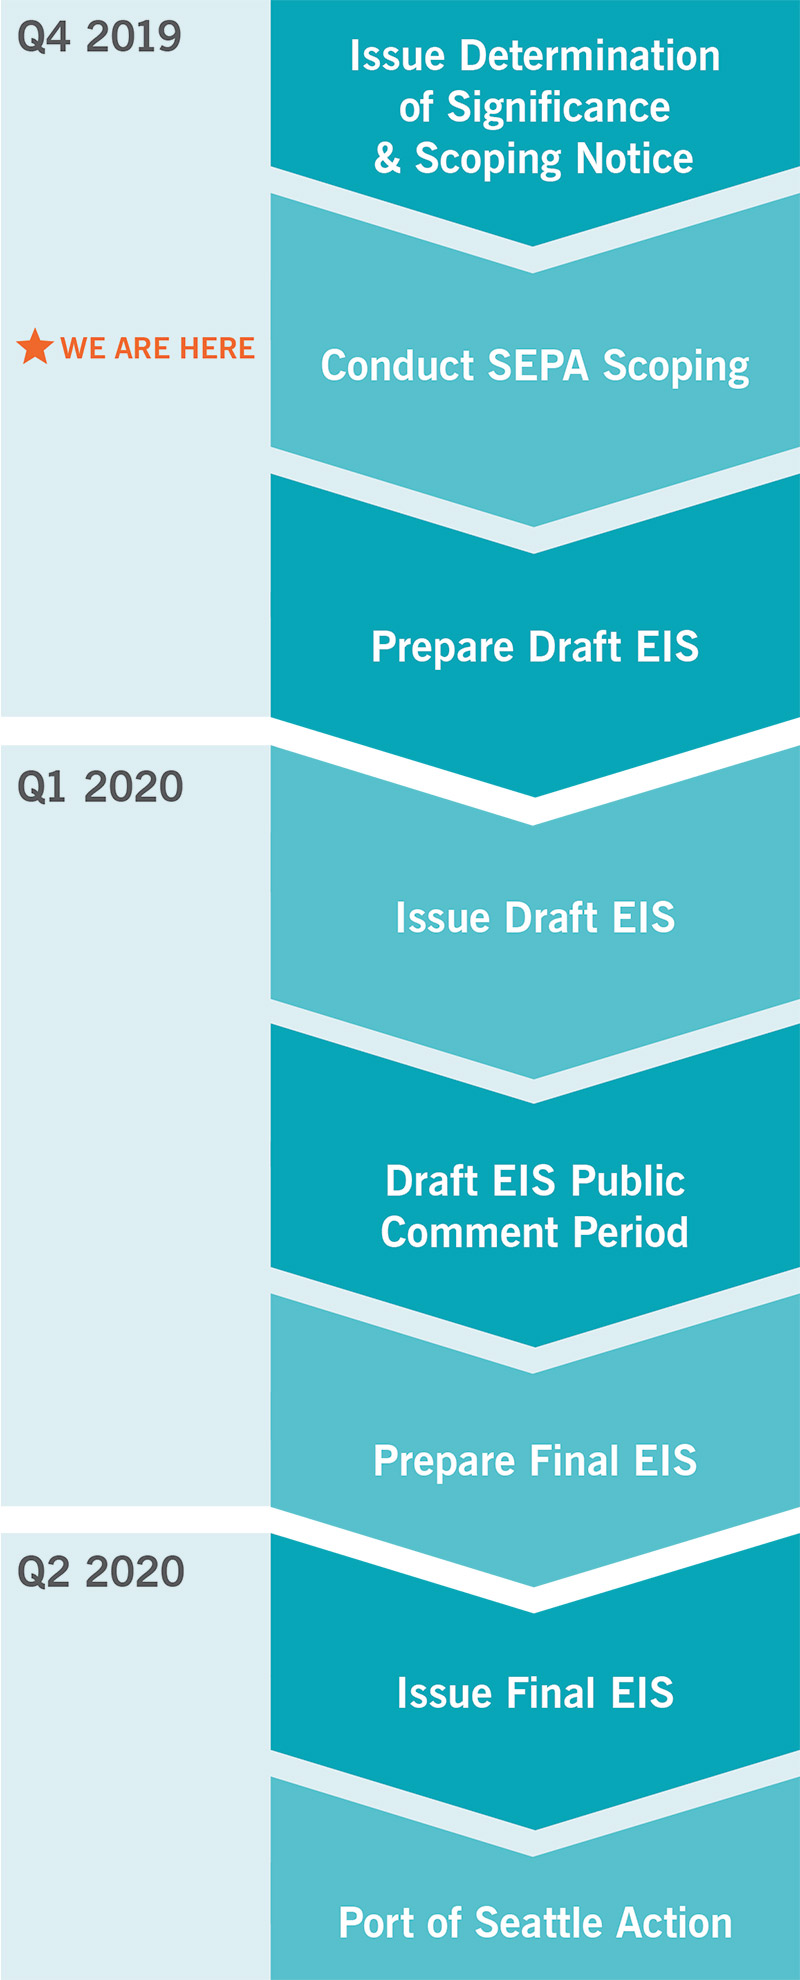 """Flowchart graphic showing the timeline of the SEPA Environmental Impact Statement process by quarter and year, beginning in Q4 2019 and ending in Q2 2020 with the following steps: Issue Determination of Significance & Scoping Notice, Conduct SEPA Scoping, Prepare Draft EIS, Issue Draft EIS, DRAFT EIS Public Comment Period, Prepare Final EIS, Issue Final EIS, NWSA Action. Red star labeled """"We are here"""" indicates that we are in the Conducting SEPA Scoping phase."""